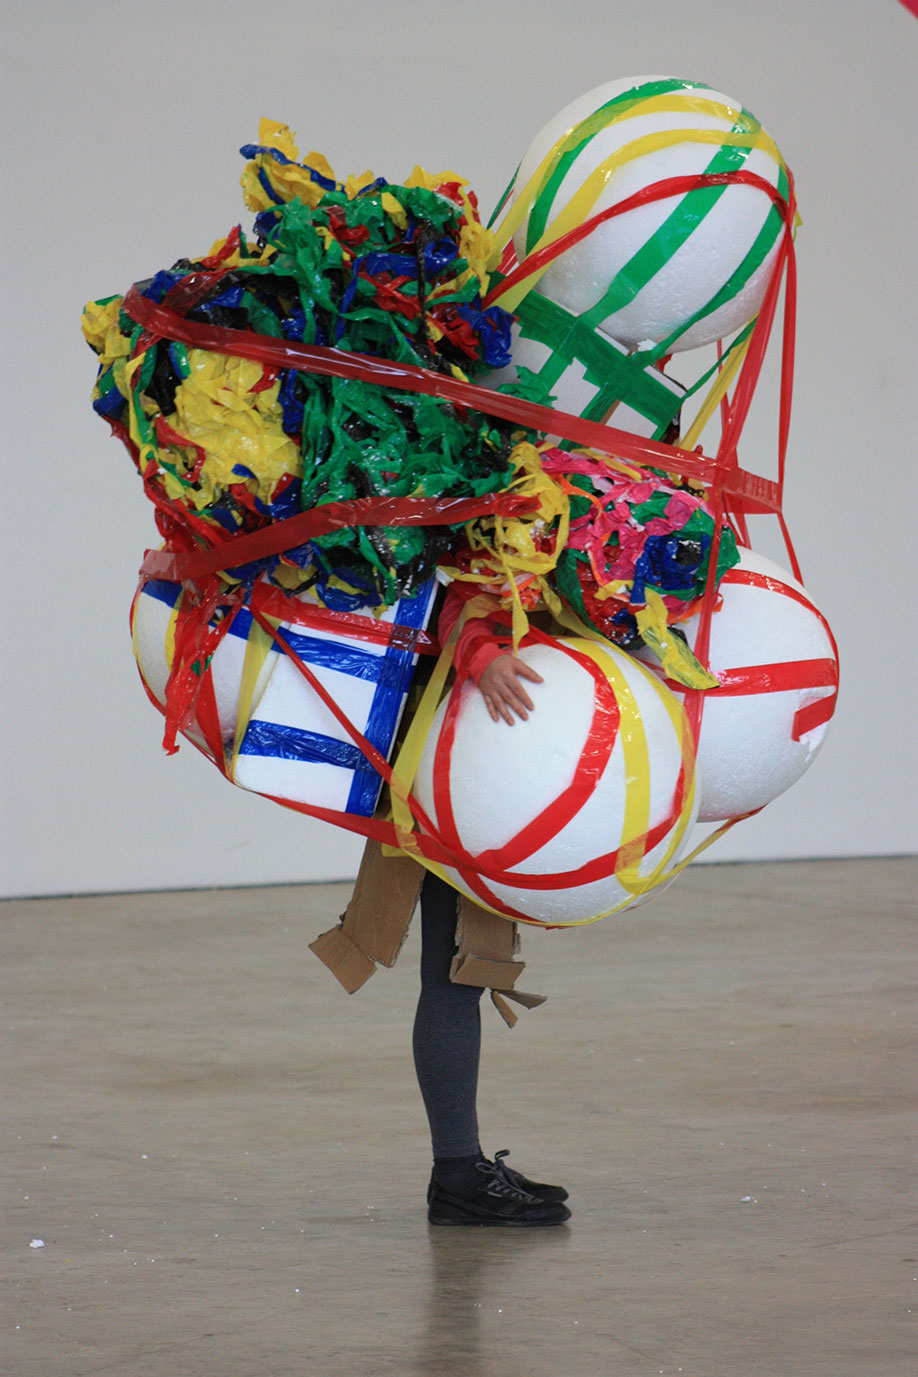 <b>Title:&nbsp;</b>MAKE<br /><b>Year:&nbsp;</b>2012<br /><b>Medium:&nbsp;</b>Performance and sculpture. Materials: Polystyrene, coloured packing tape, and cardboard. Photo: Gian Paolo Cottino<br />